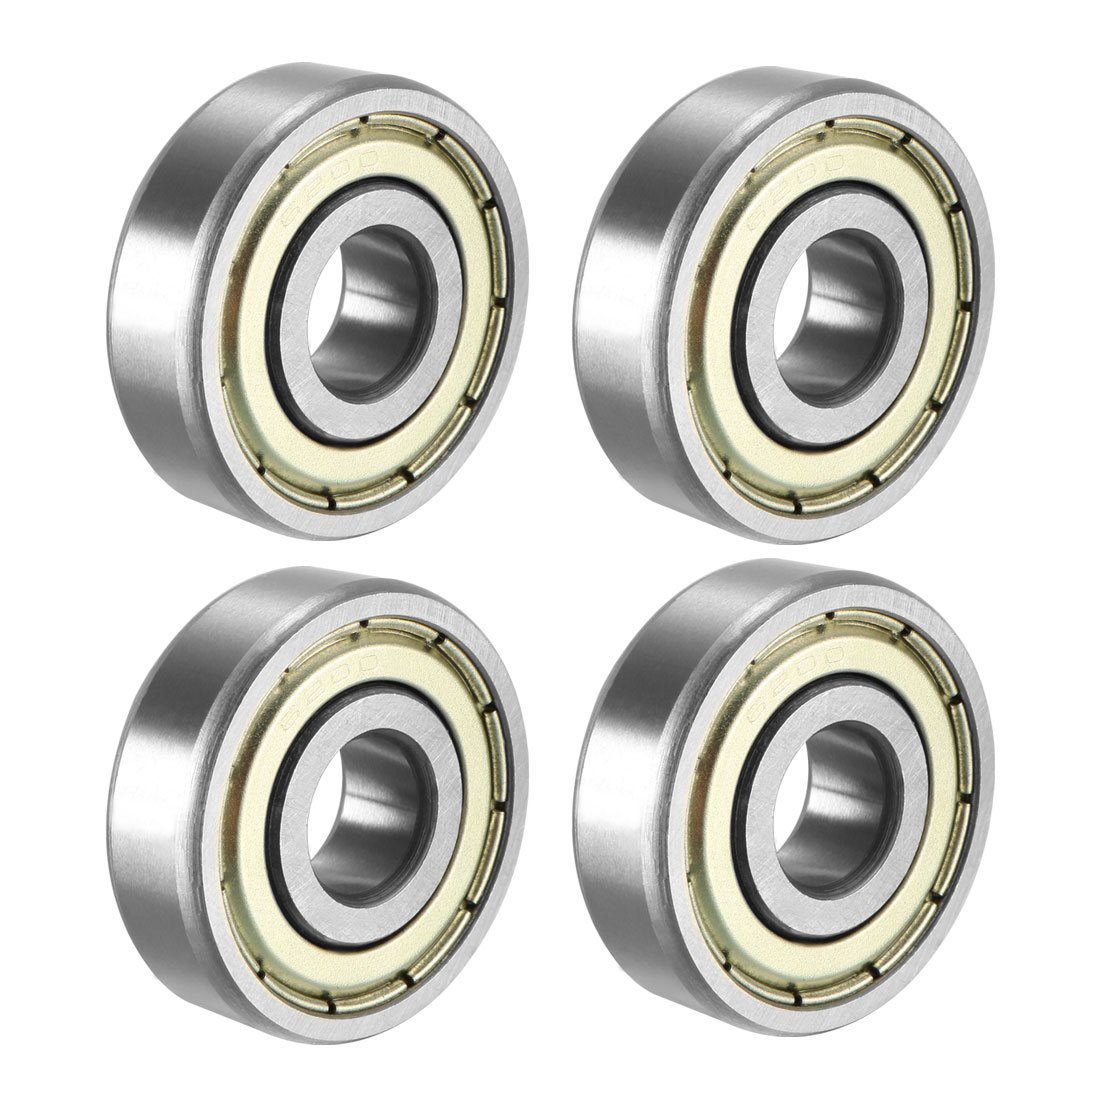 uxcell 683ZZ Ball Bearing 3mm x 7mm x 3mm Double Shielded 683-2Z Deep Groove Bearings Pack of 20 Carbon Steel